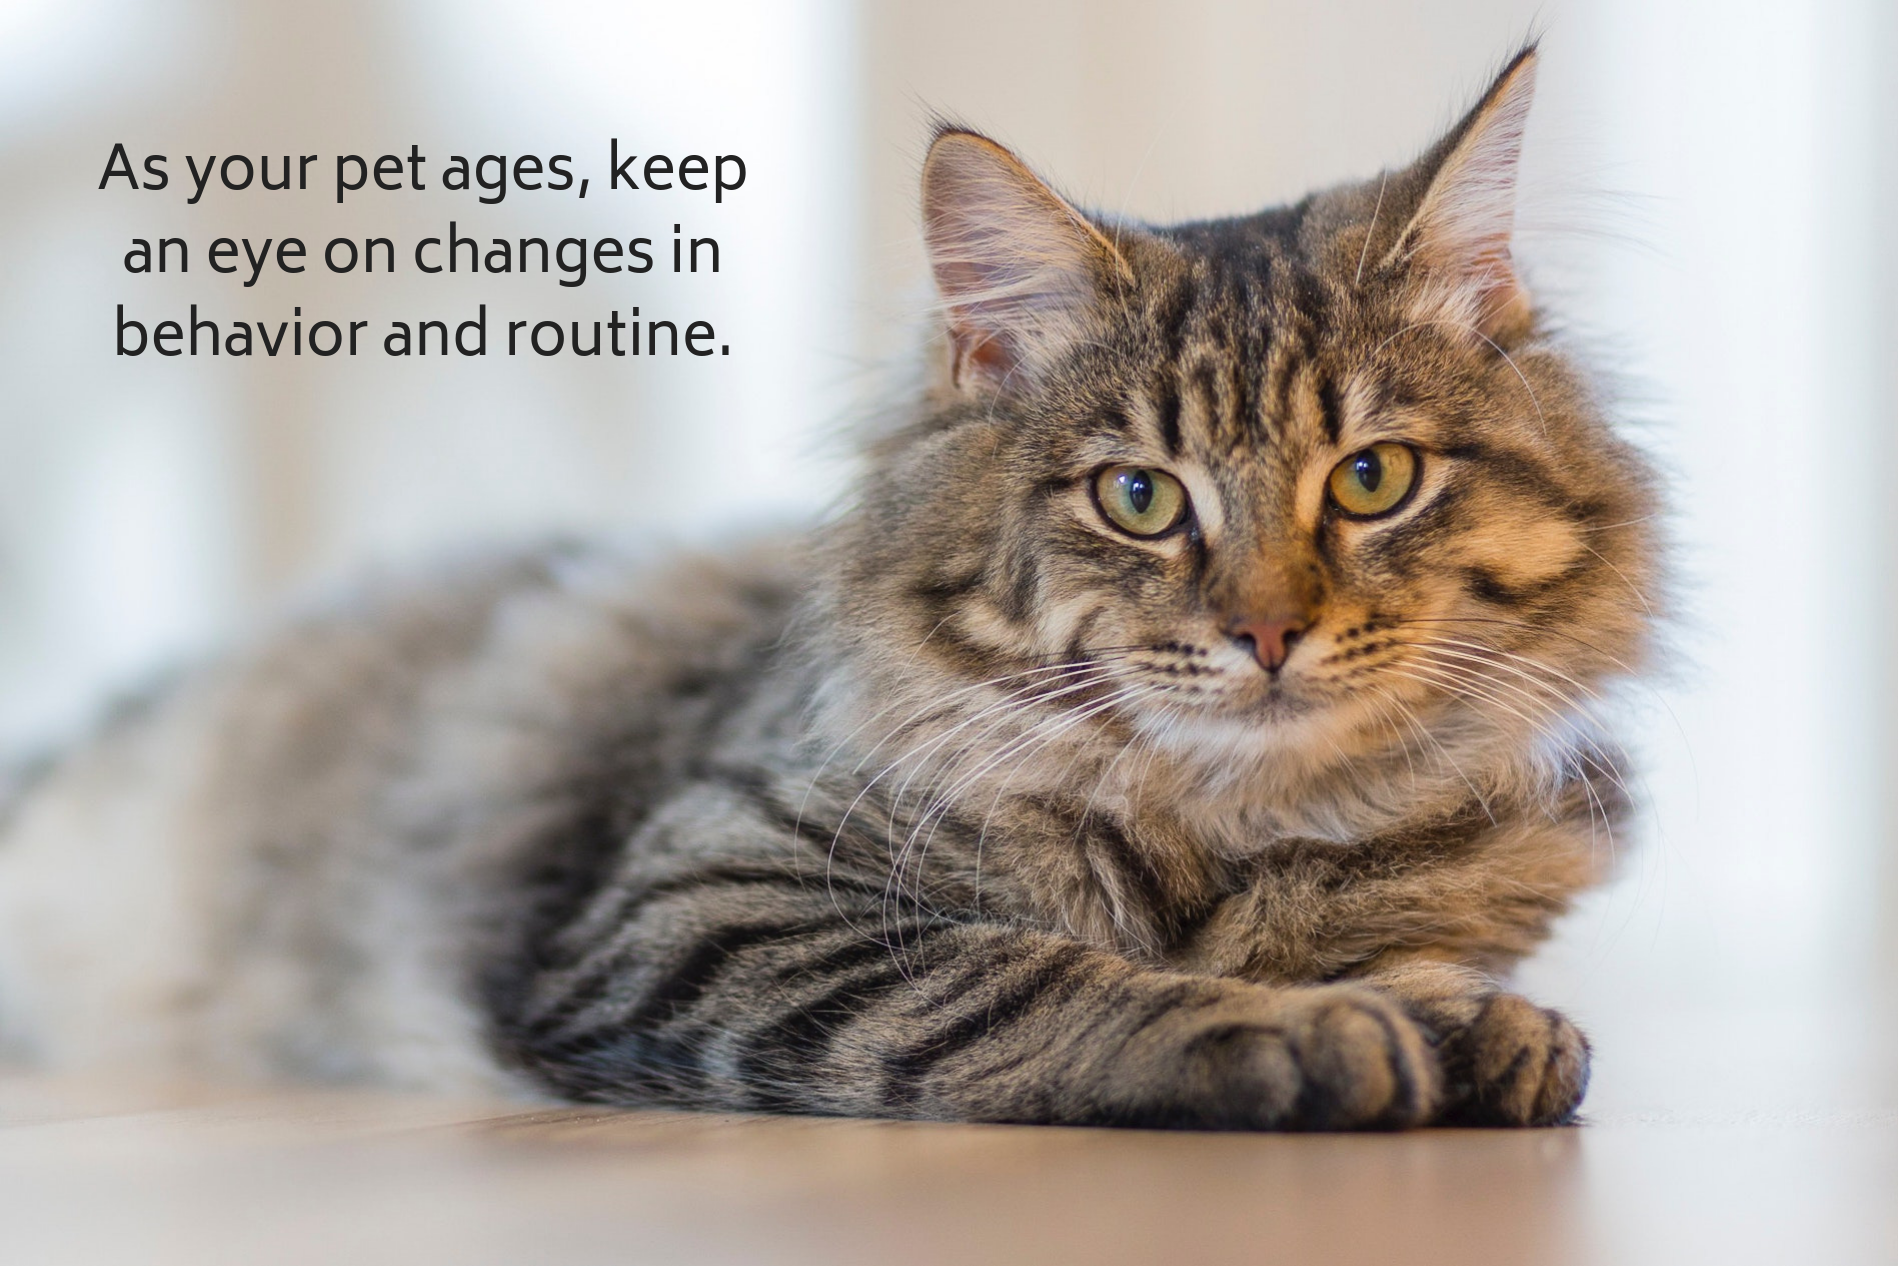 As your pet ages, keep an eye on changes in behavior and routine.